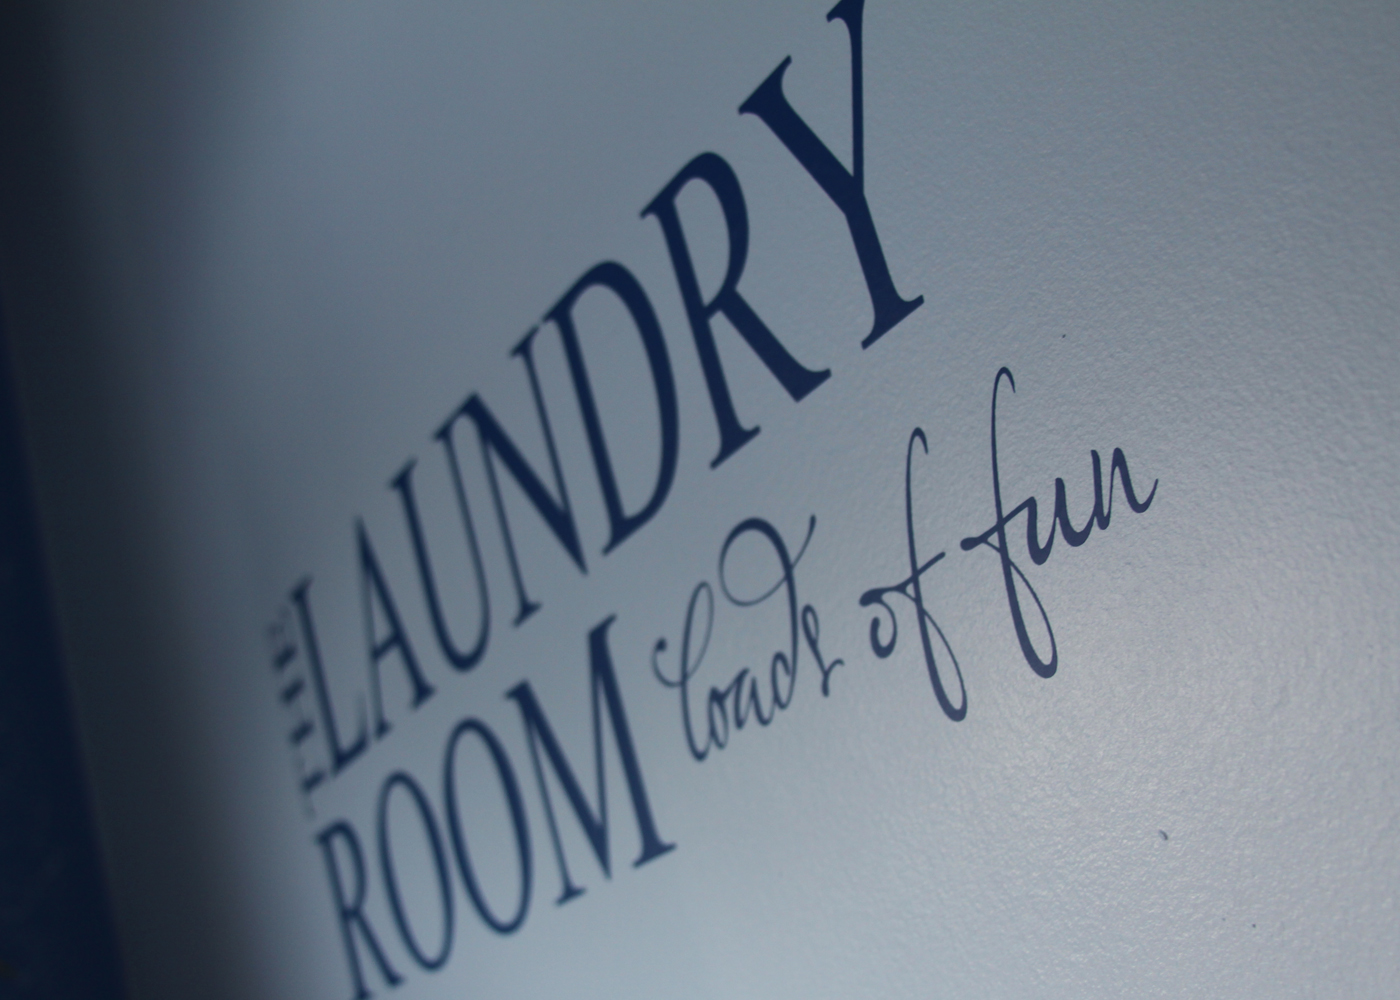 laundry-room-loads-of-fun-wall-decal-quote.jpg